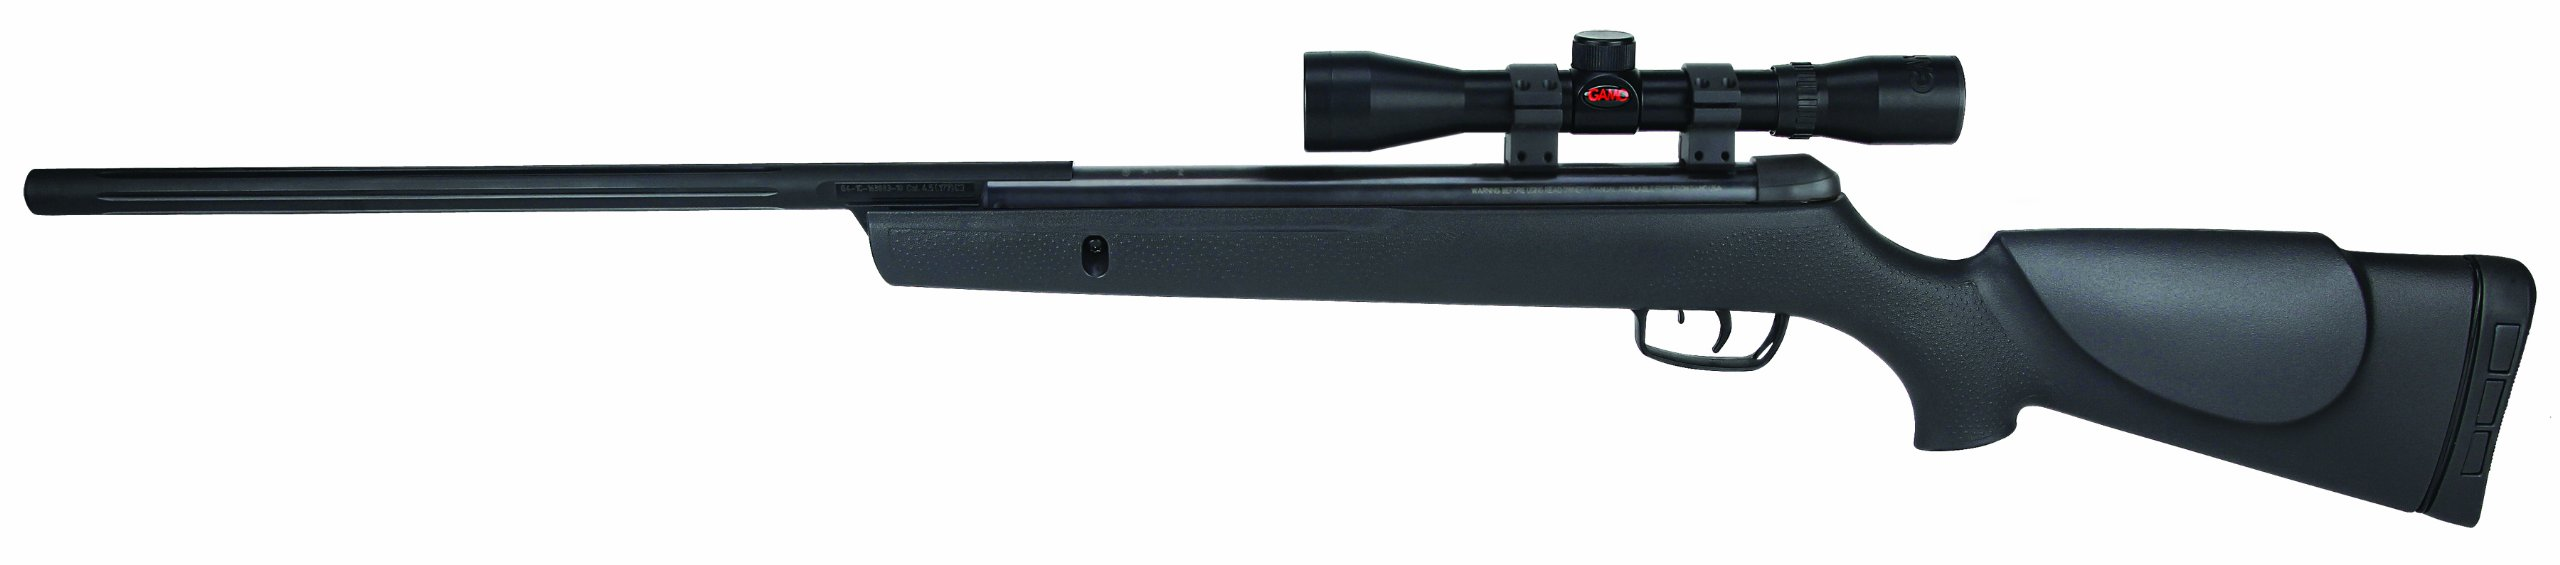 Gamo 6110065654 Big Cat 1250